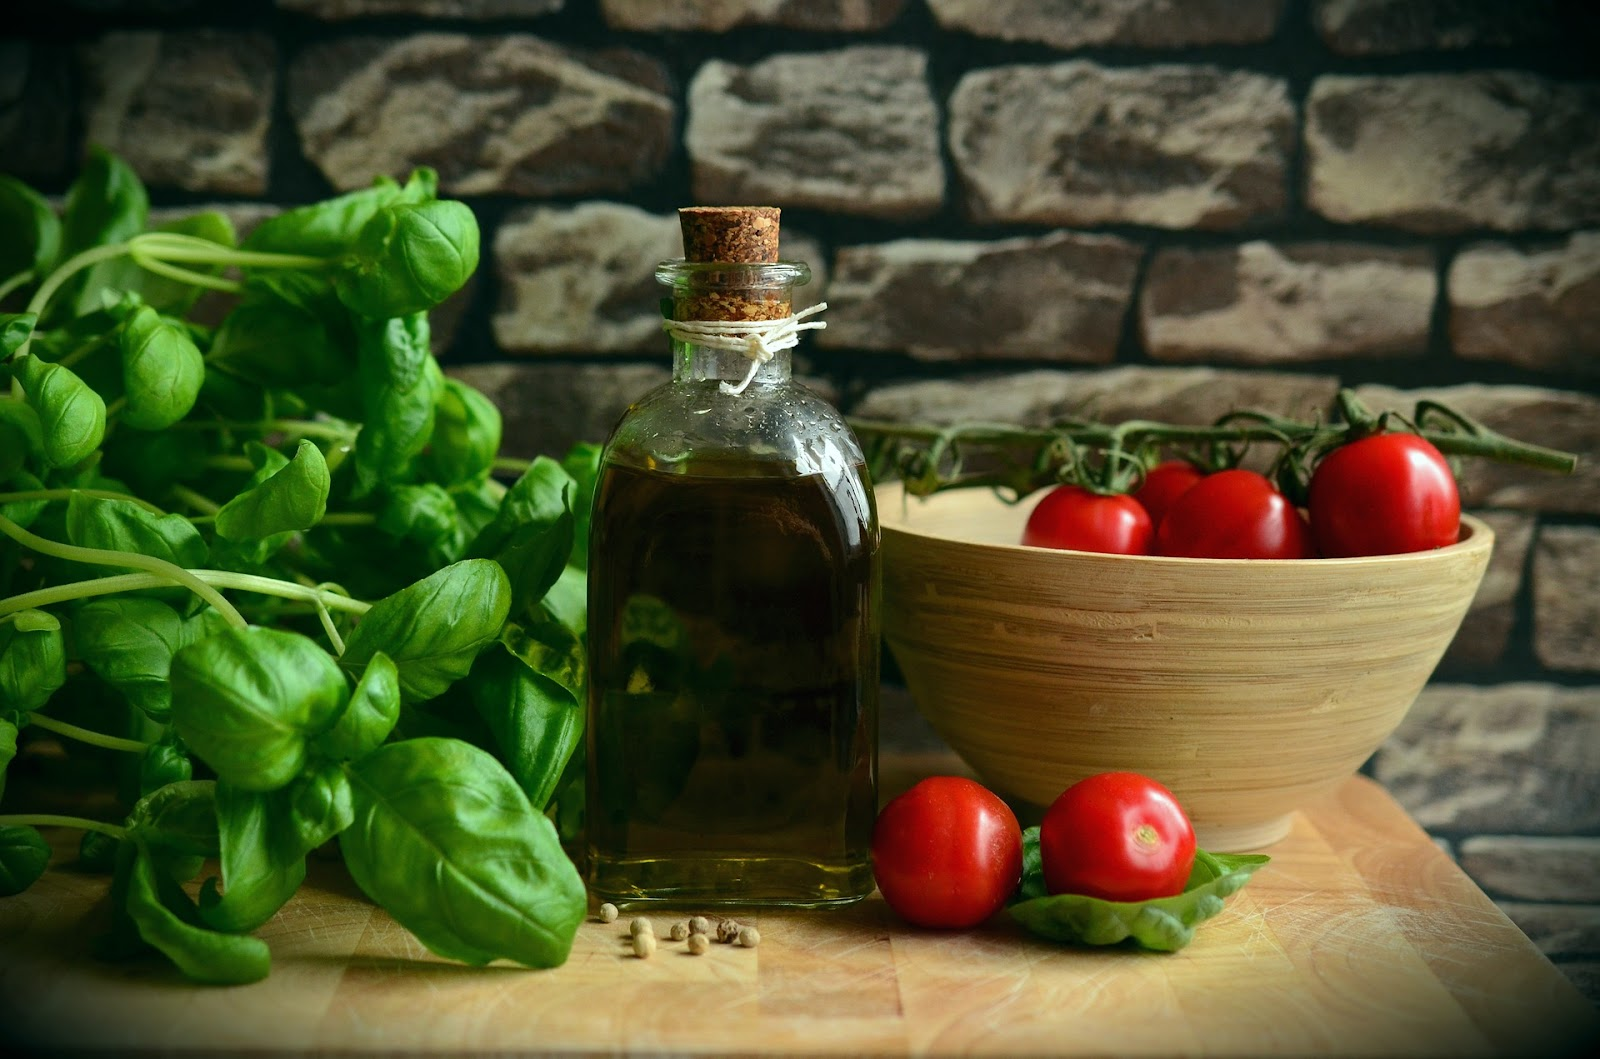 Olive oil and salad ingredients